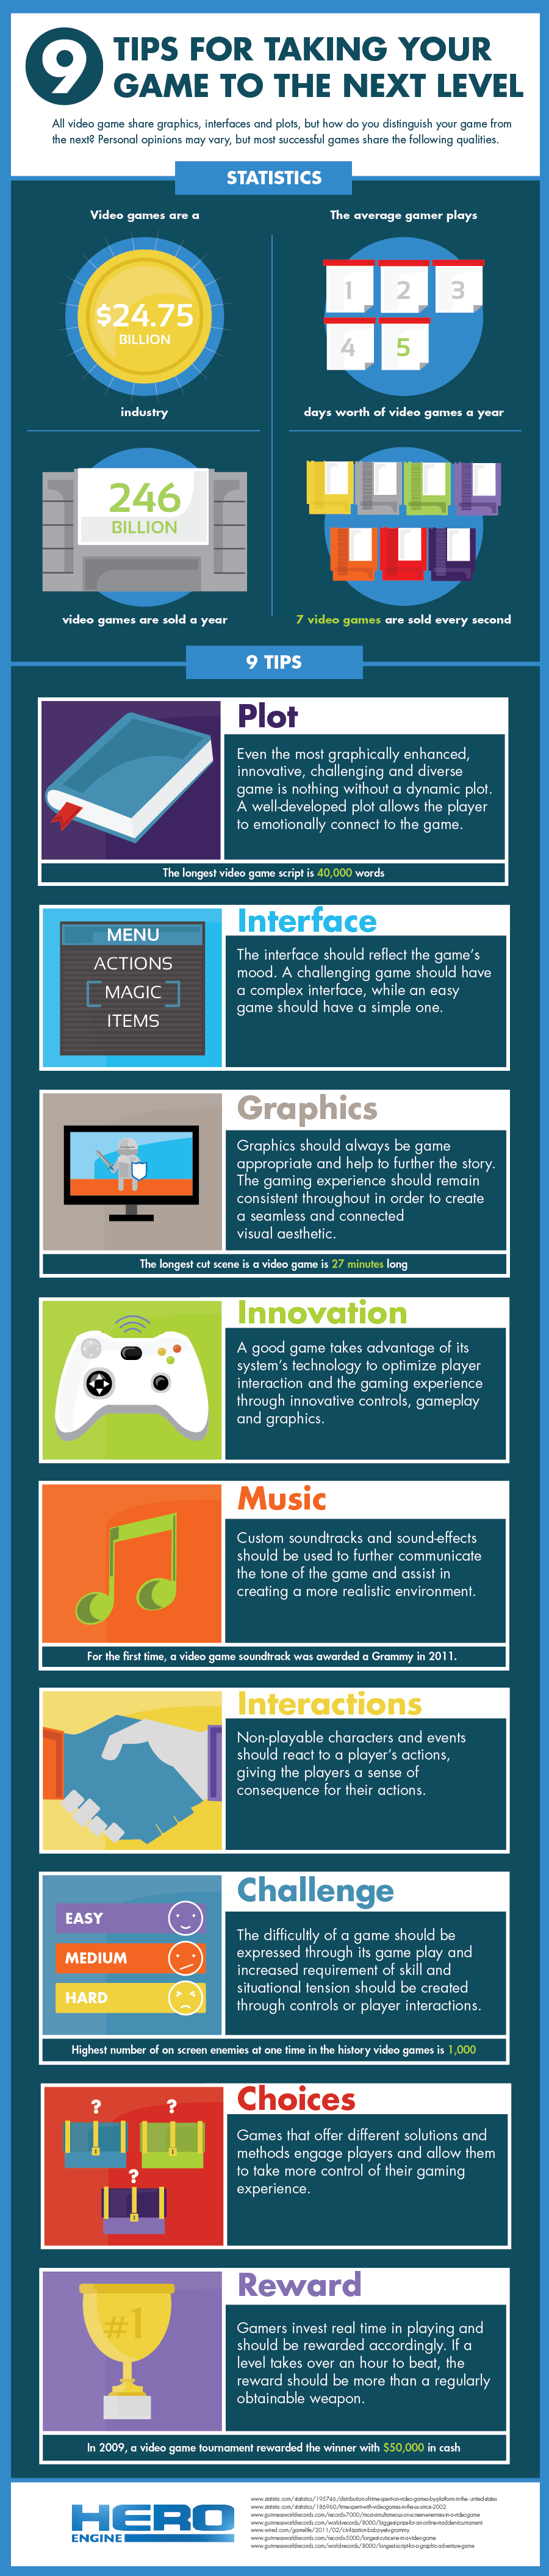 78 best ideas about video game development on pinterest game design video game designer and video game design schools